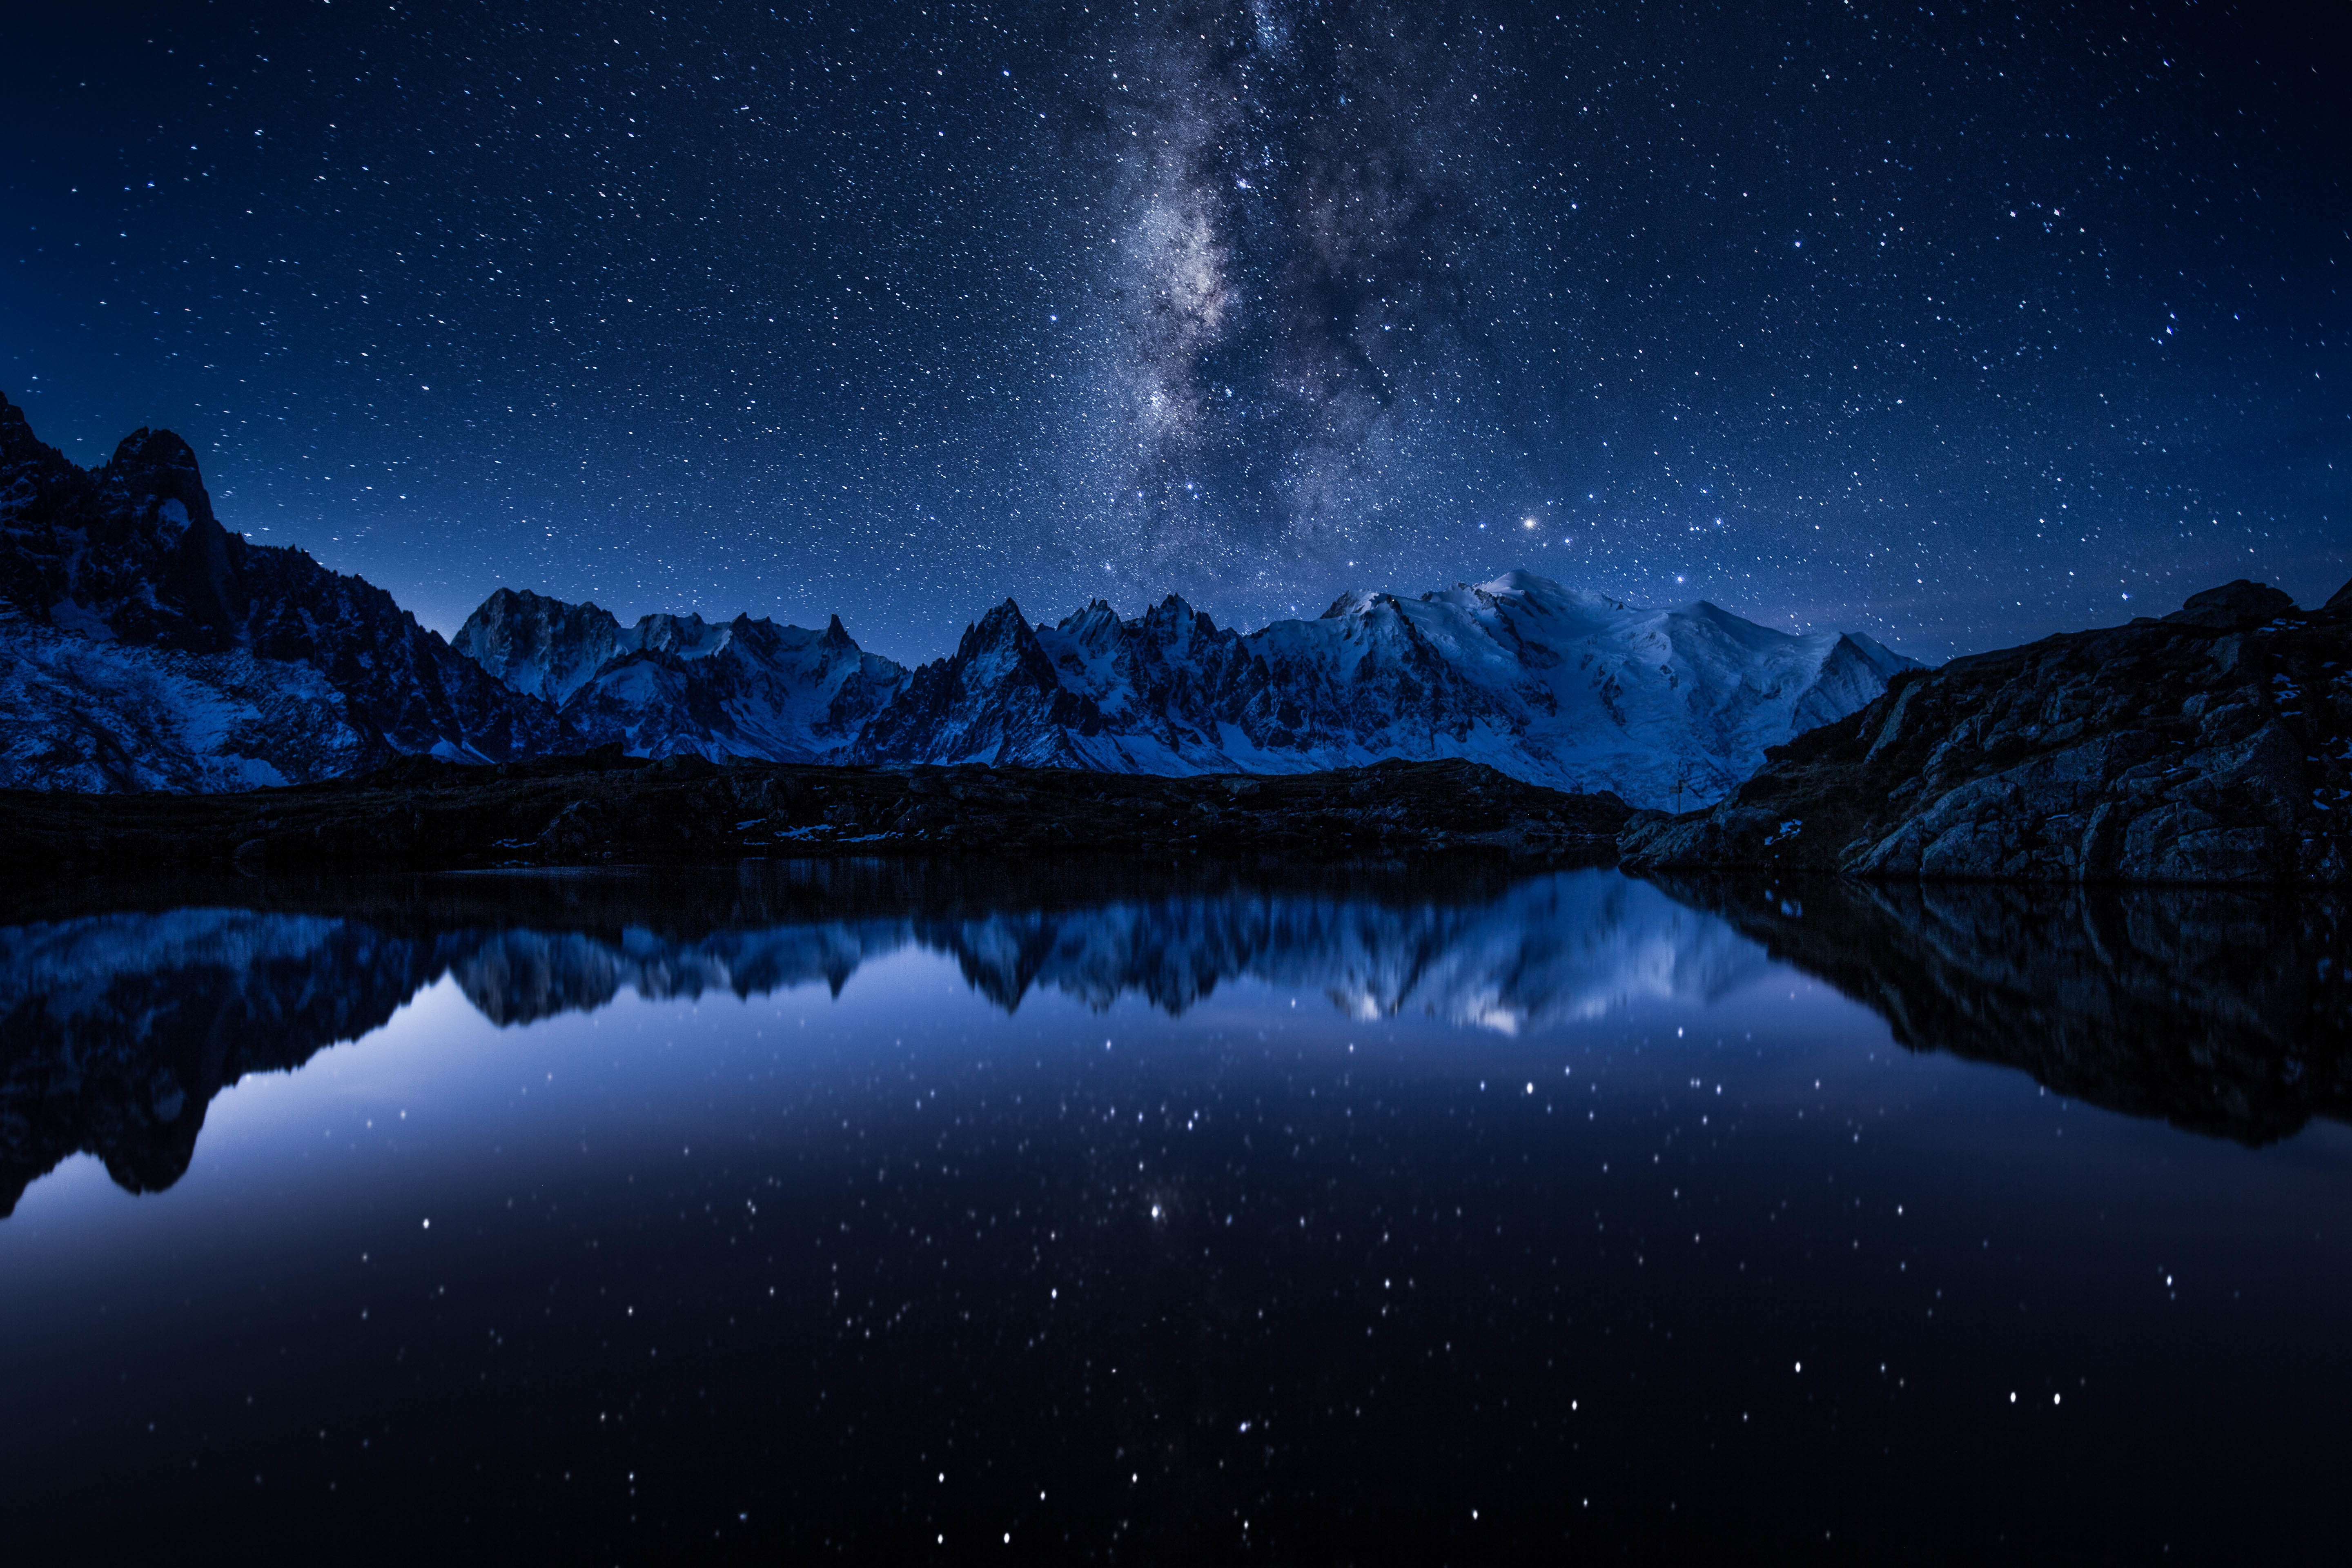 milky way 5k hd photography 4k wallpapers images